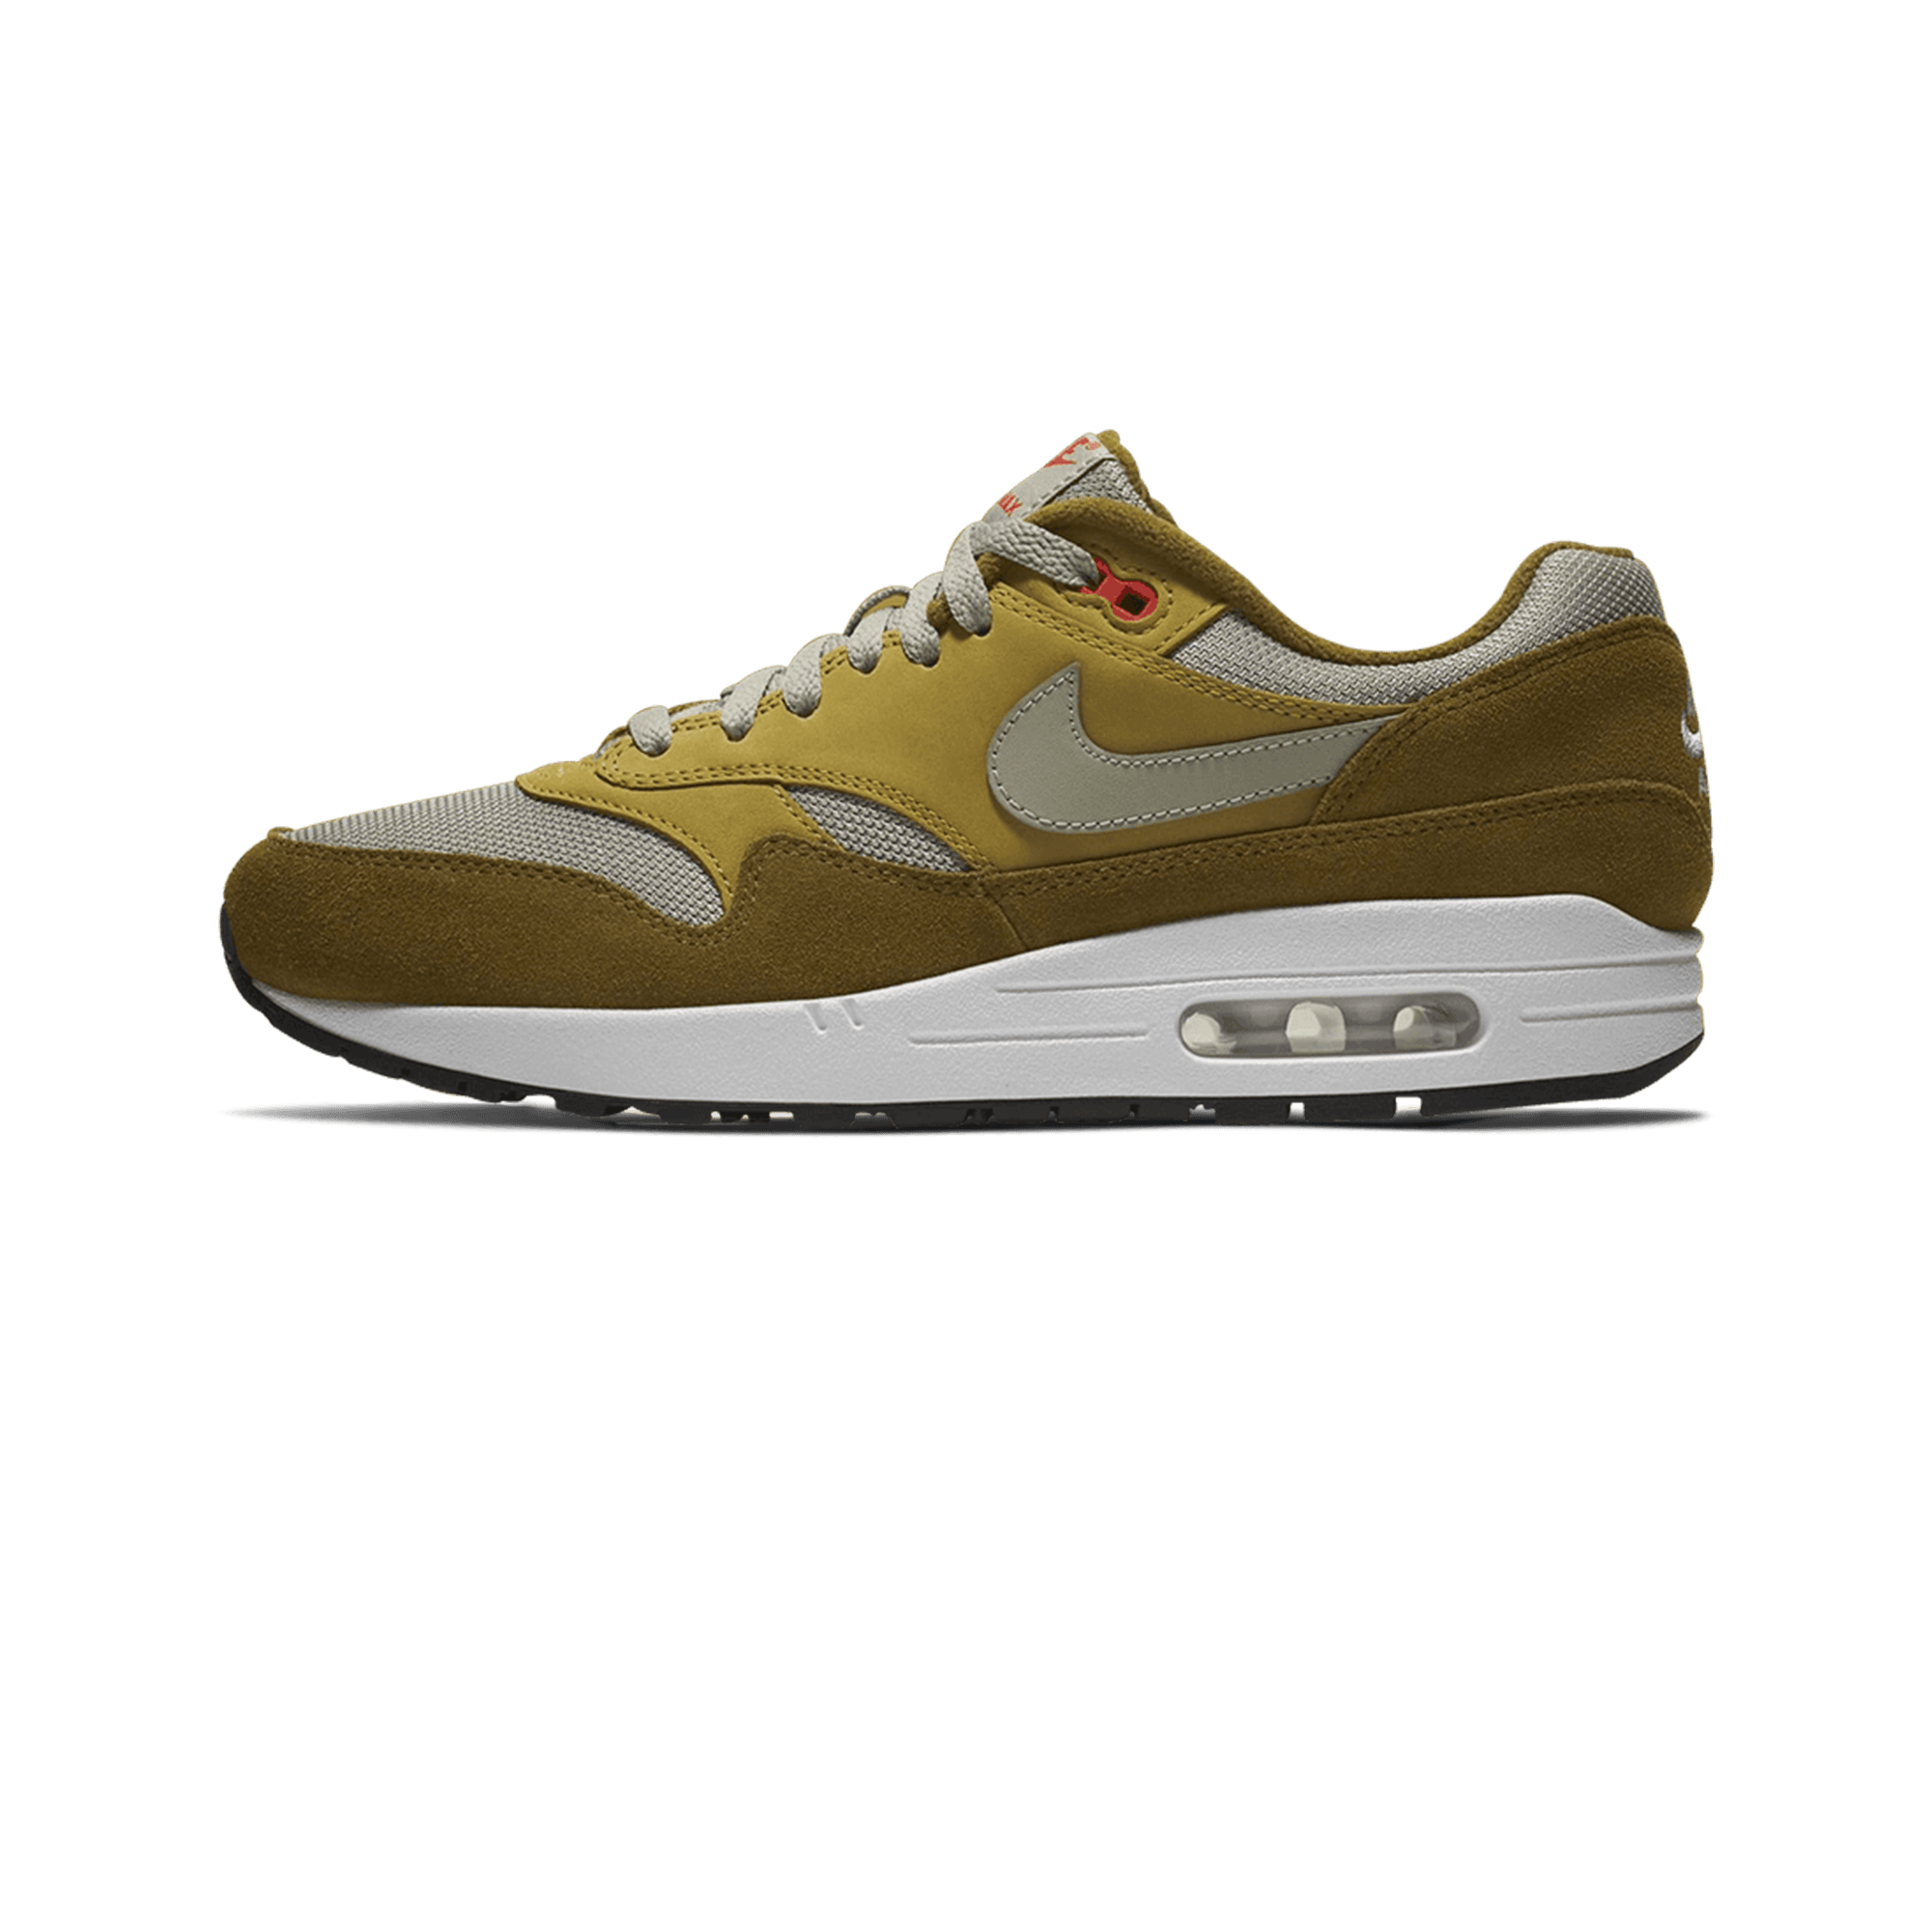 Air Max 1 Premium Retro Curry Pack olive flak / spruce fog / peat moss